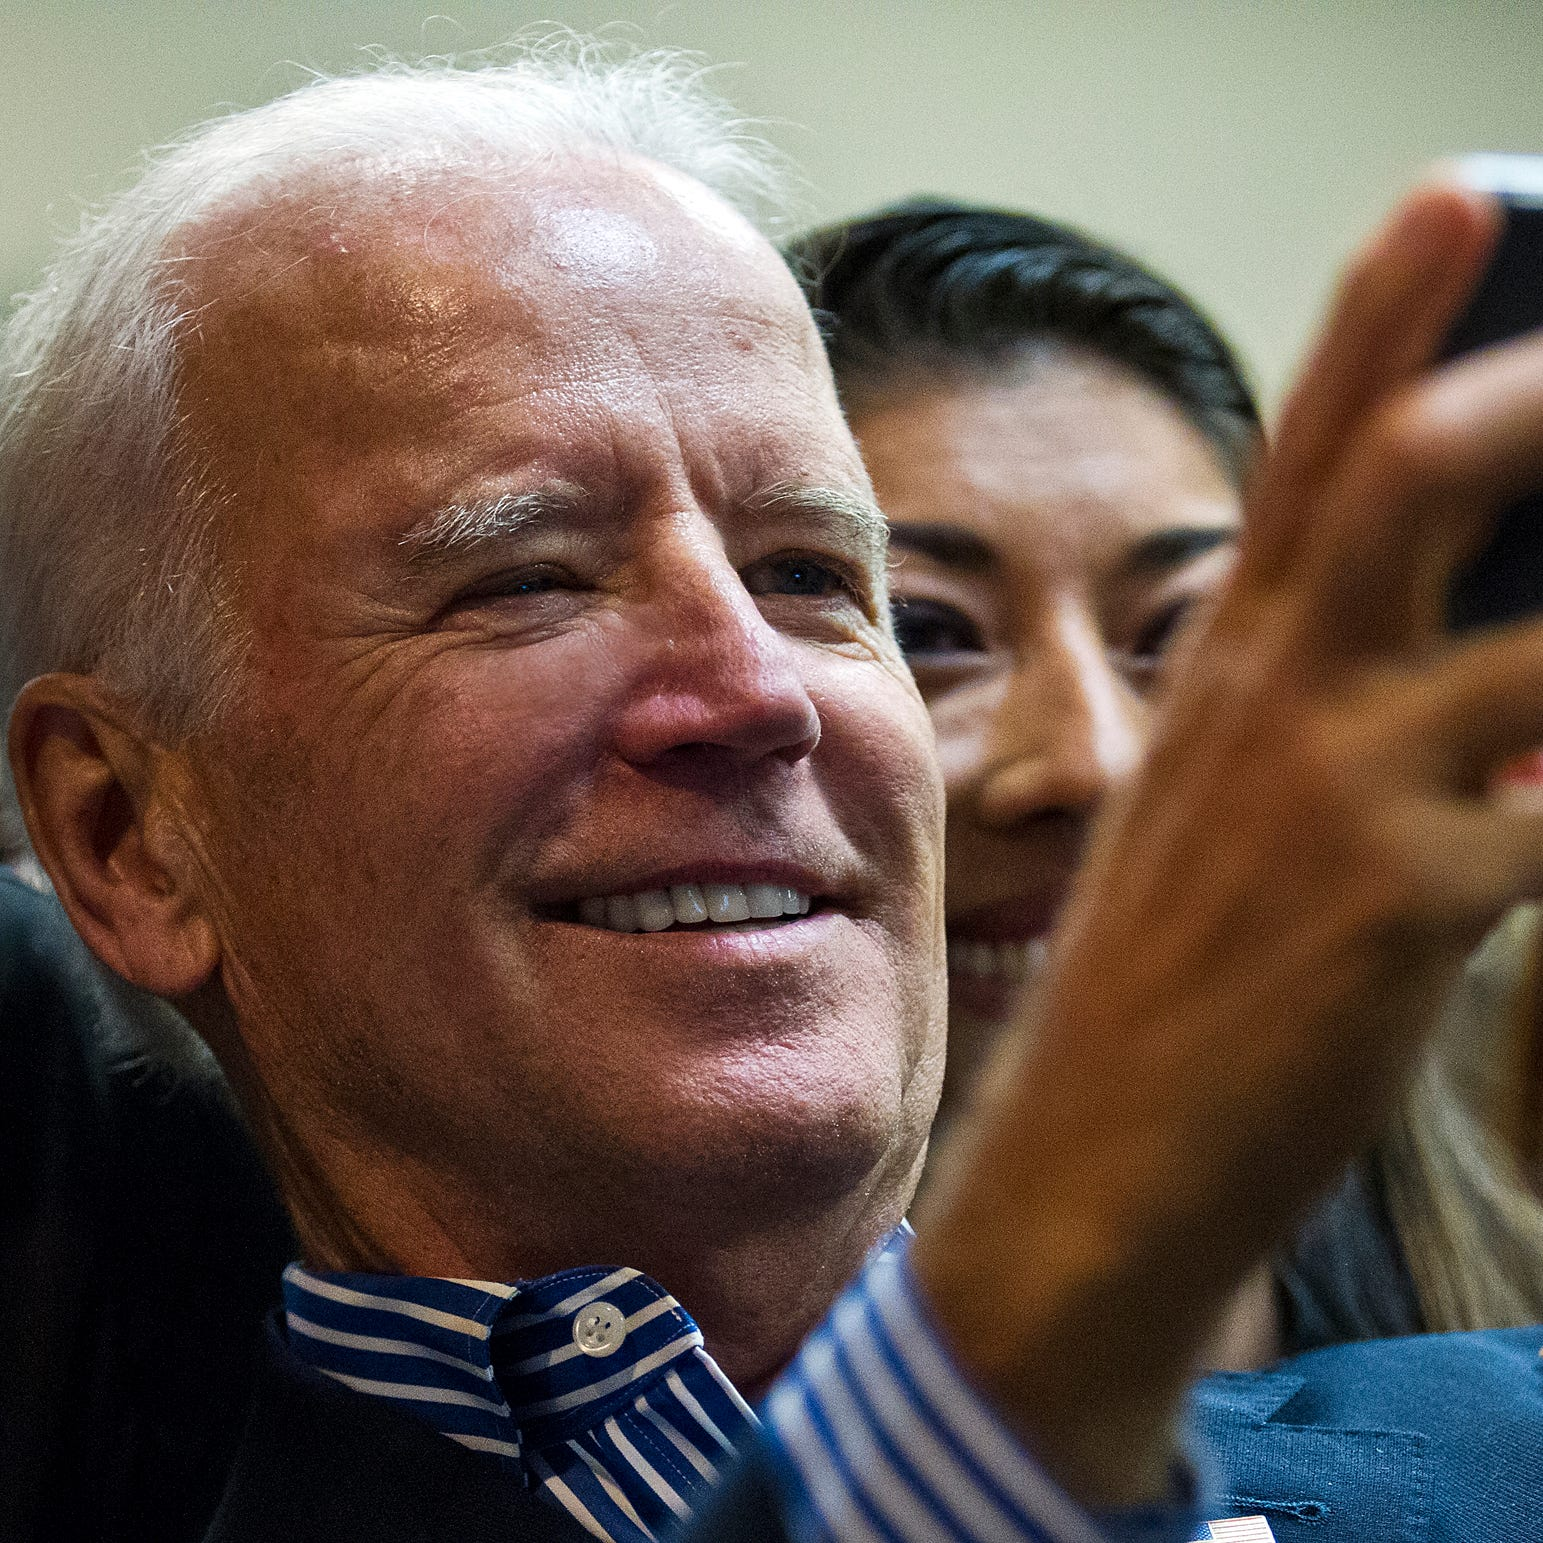 Nevada politician accuses Joe Biden of unwanted touching, says inappropriate behavior an 'open secret'